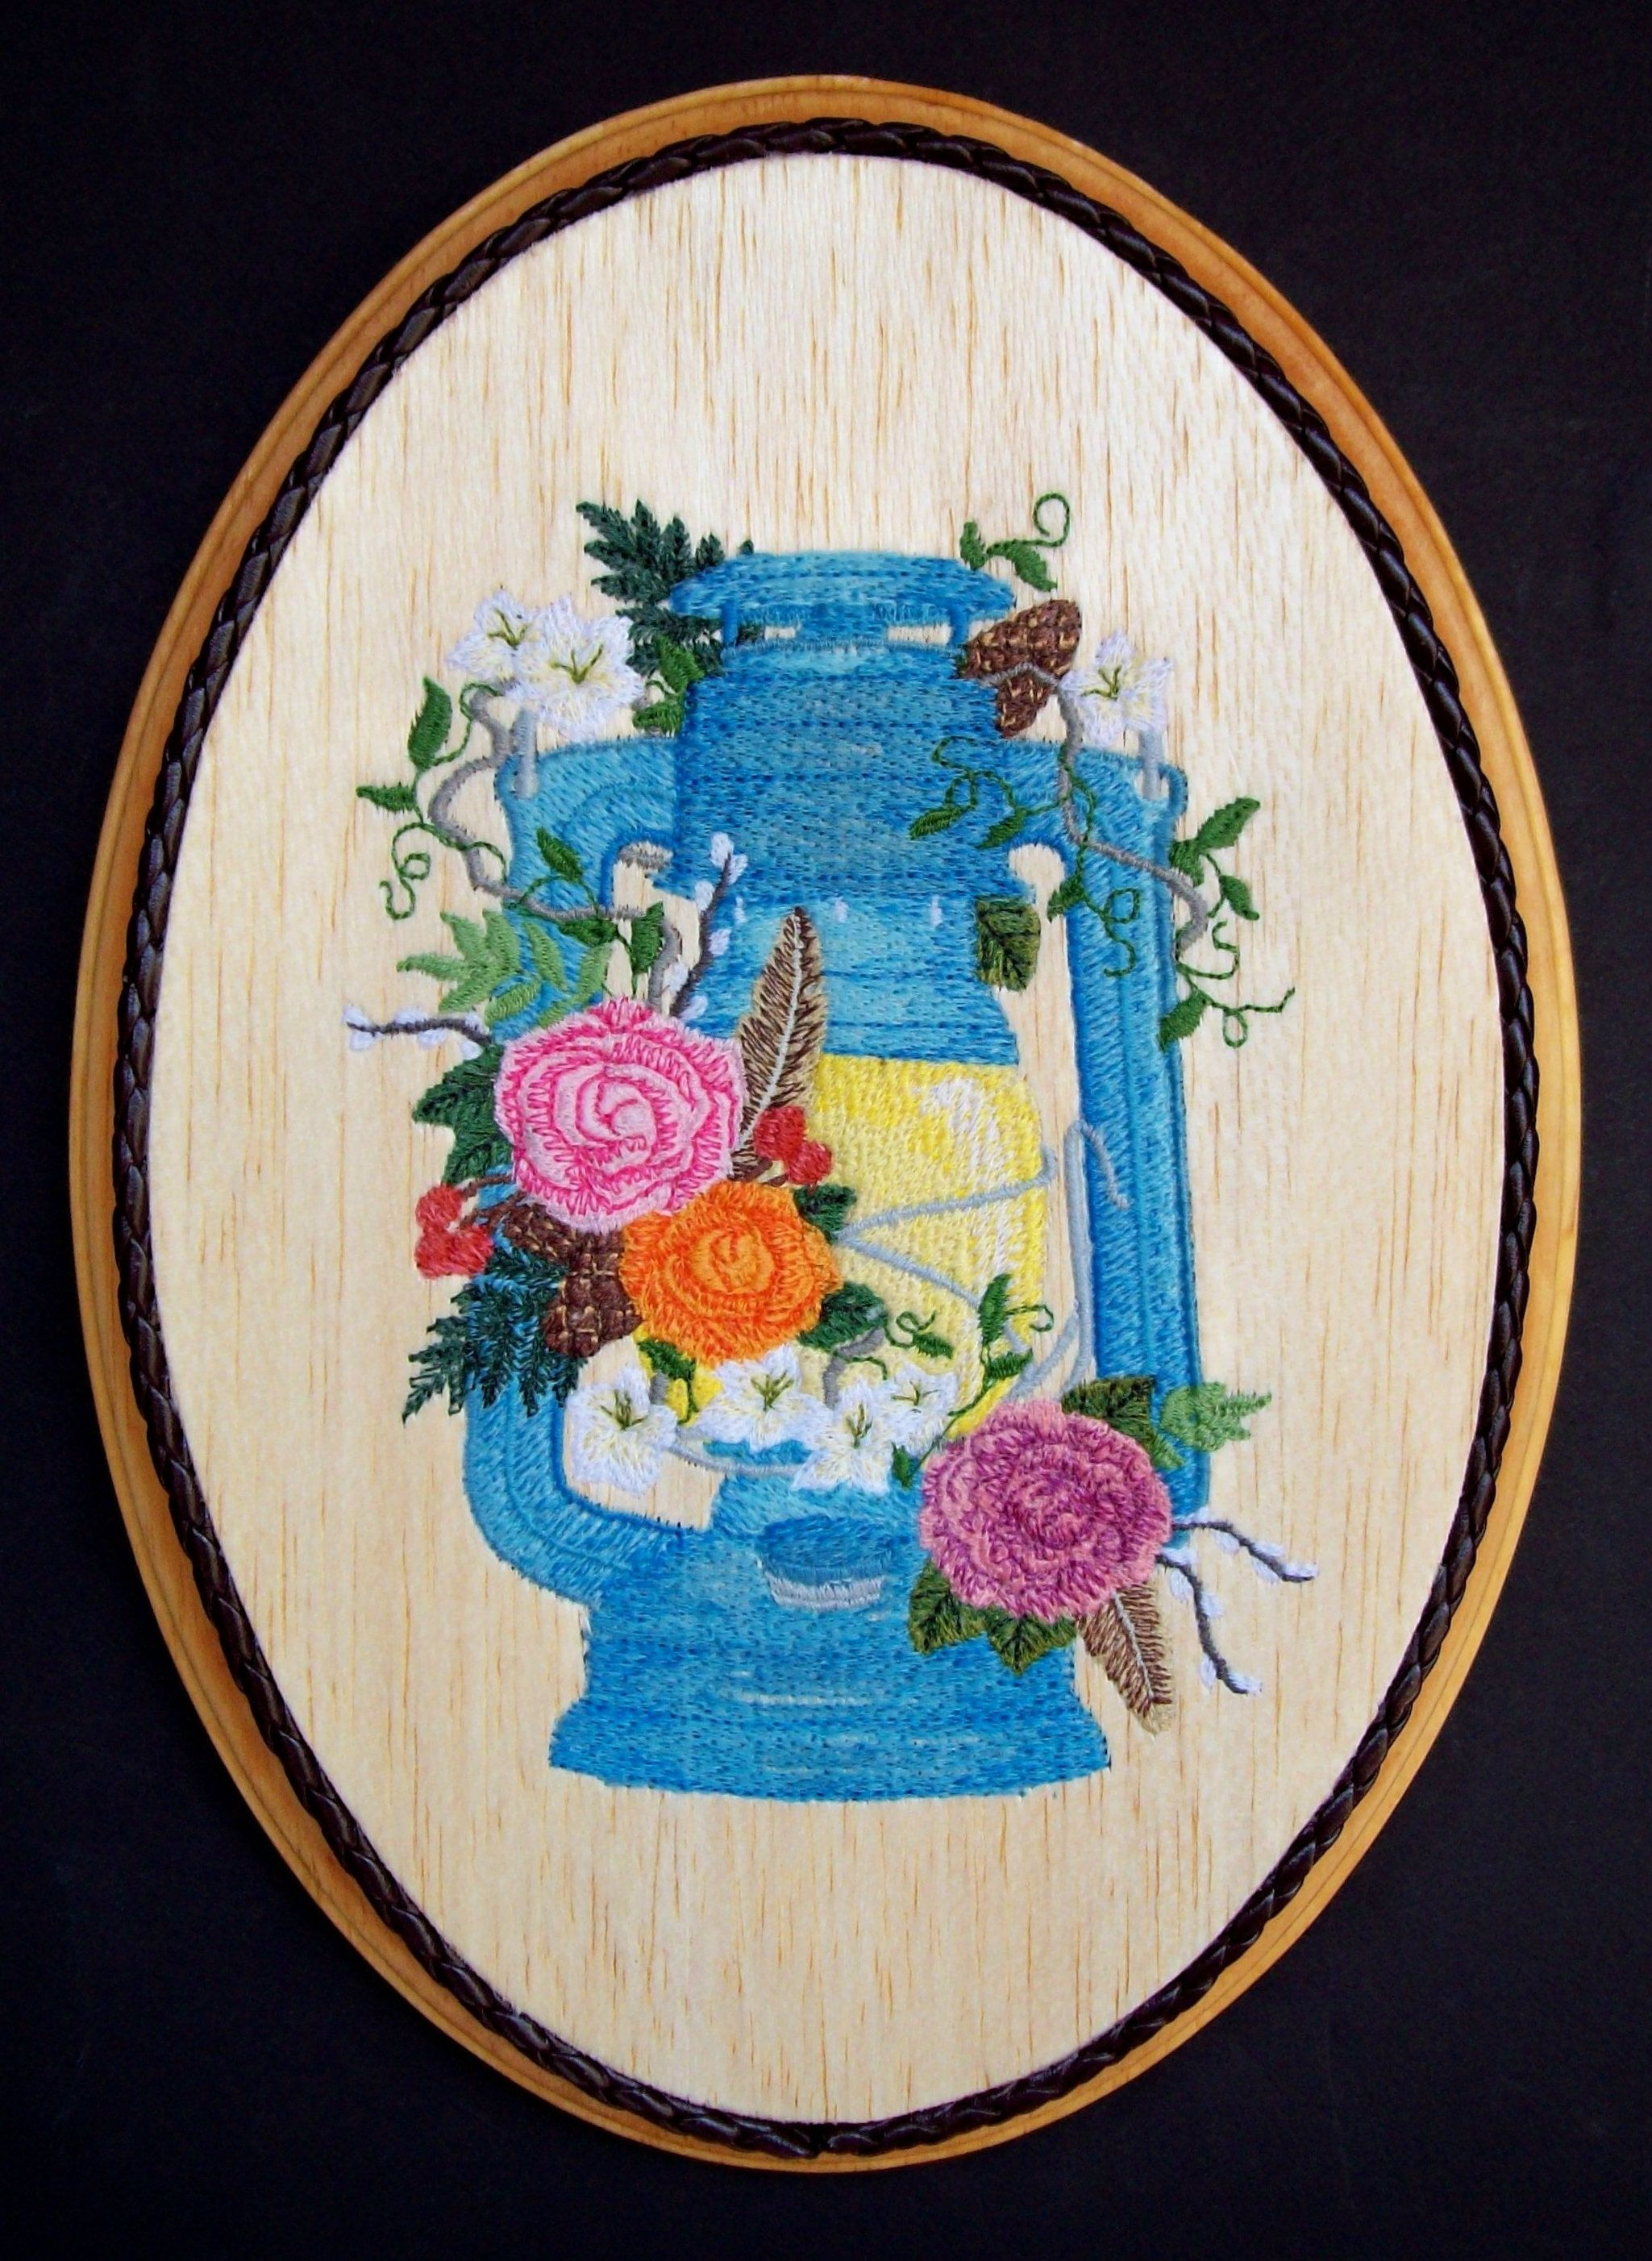 Camping Decor, Lantern Embroidery Wood Art, Lodge Decor, Country ...